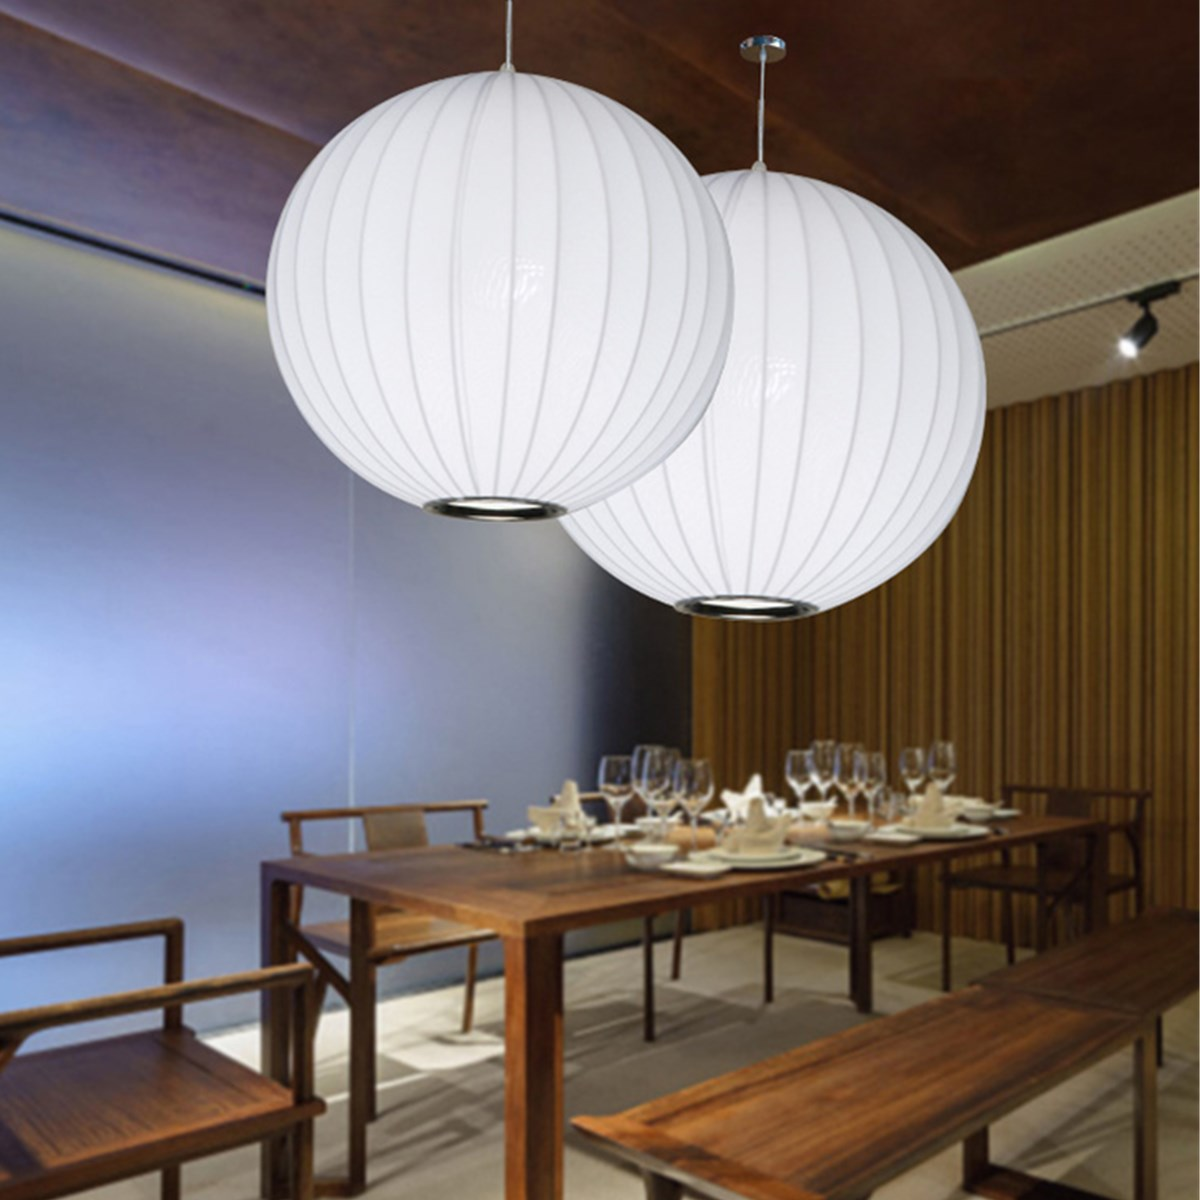 E27 Silk Pendant Lights Bubble Lamp White Silk Ball Pendant Light White Living Room Home Pendant Lamp Pendant Indoor Lighting replica nonla e27 modern white pendant lights pendant lamp pendant light pendant lighting